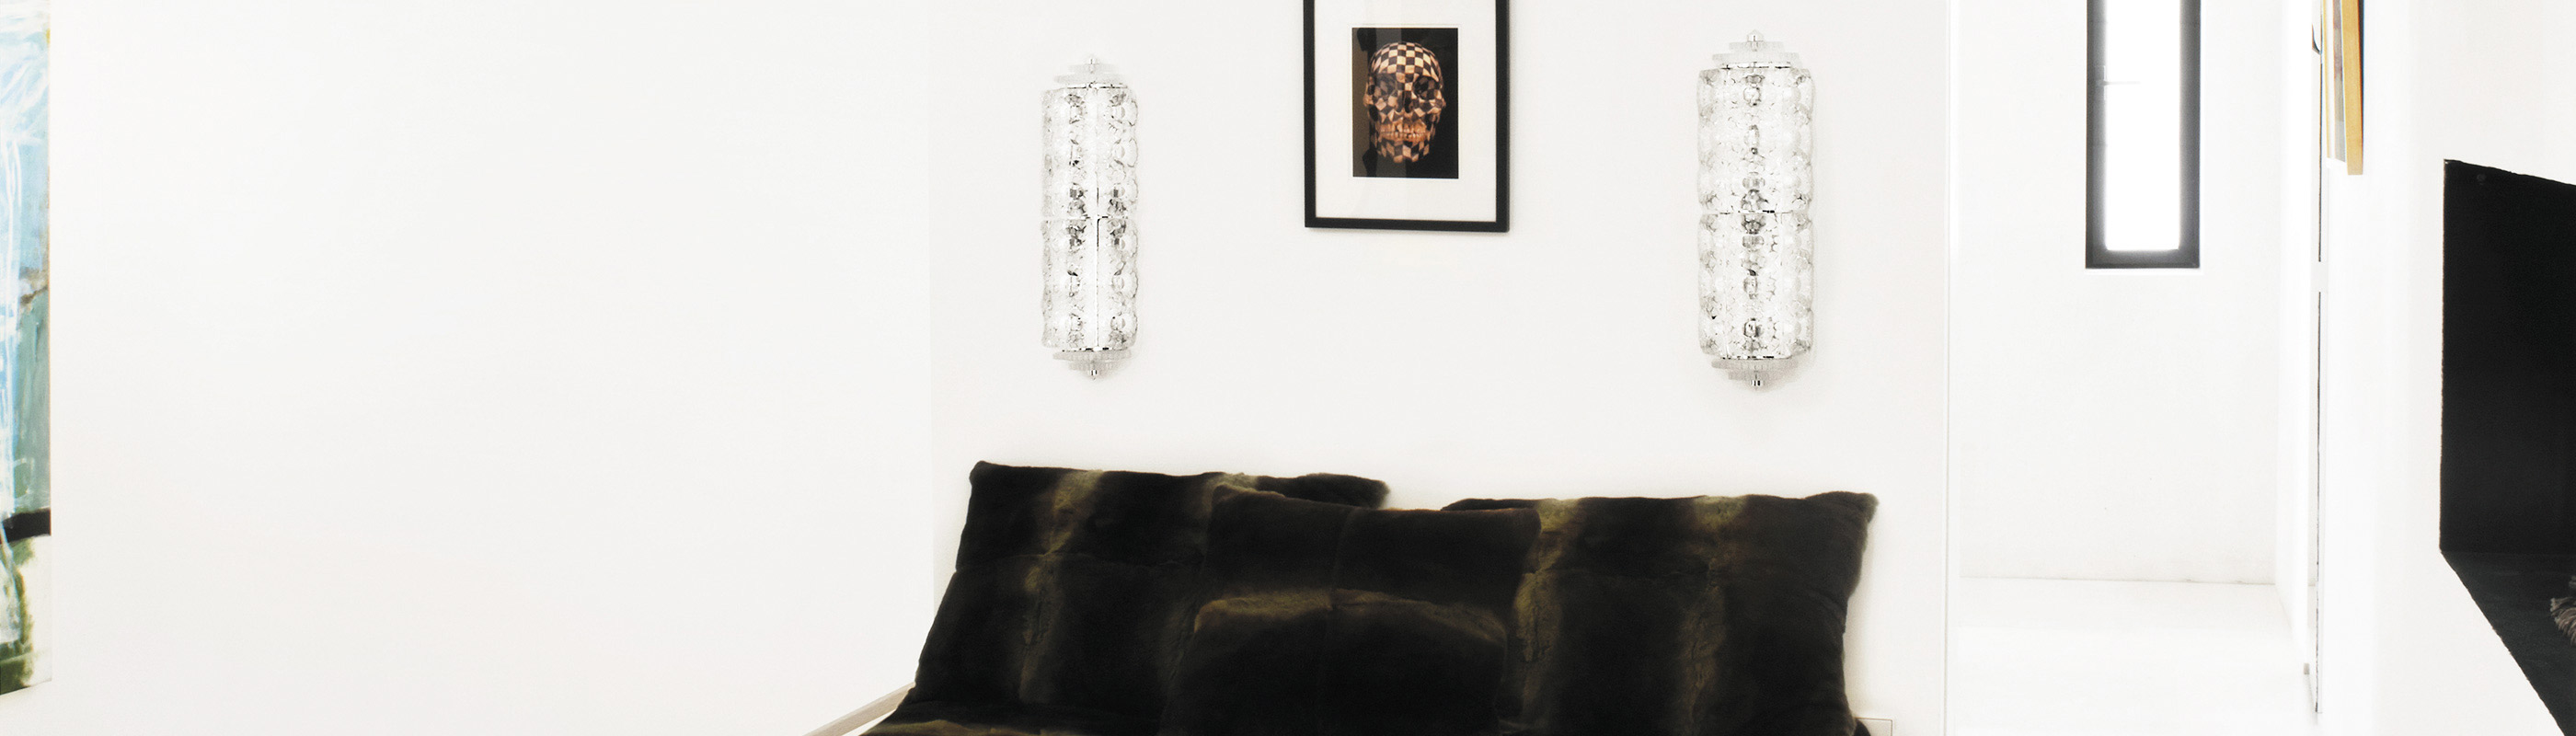 Crystal wall lamps Lalique Interior Design Lalique